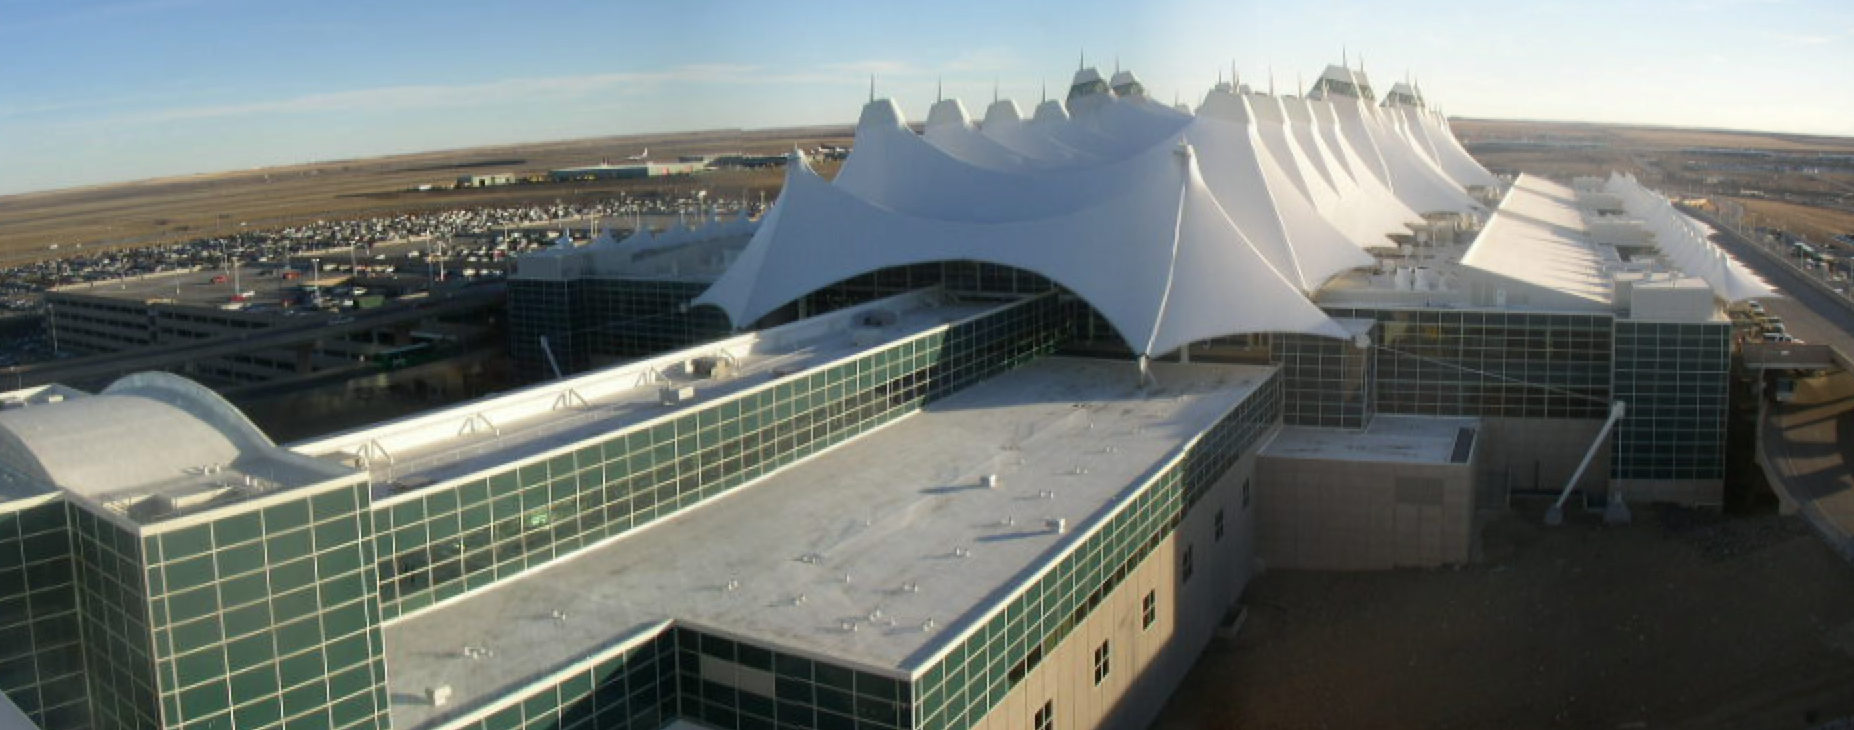 Denver International Airport Is Reroofed With Epdm After A